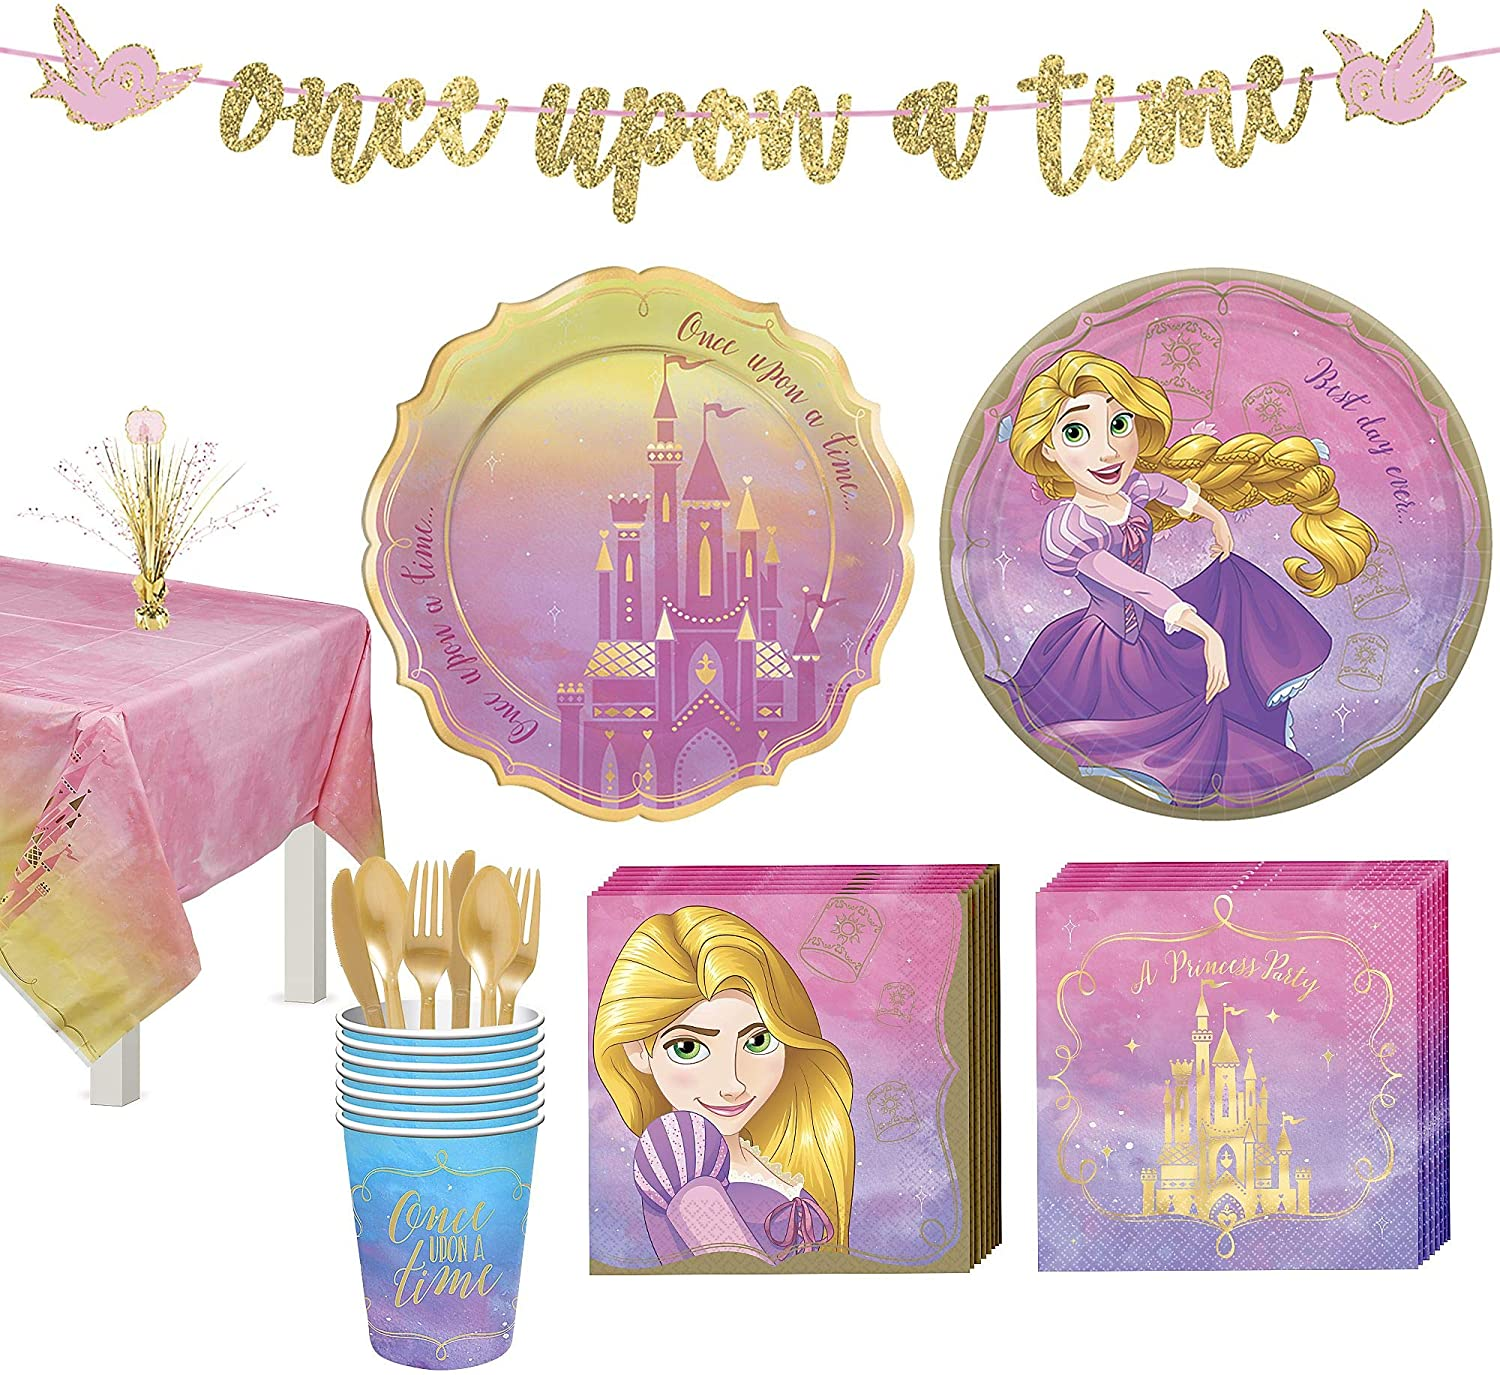 Party City Disney Princess Rapunzel Tableware Kit for 8 Guests, Includes Cups, Cutlery, Napkins, Plates, and Decor